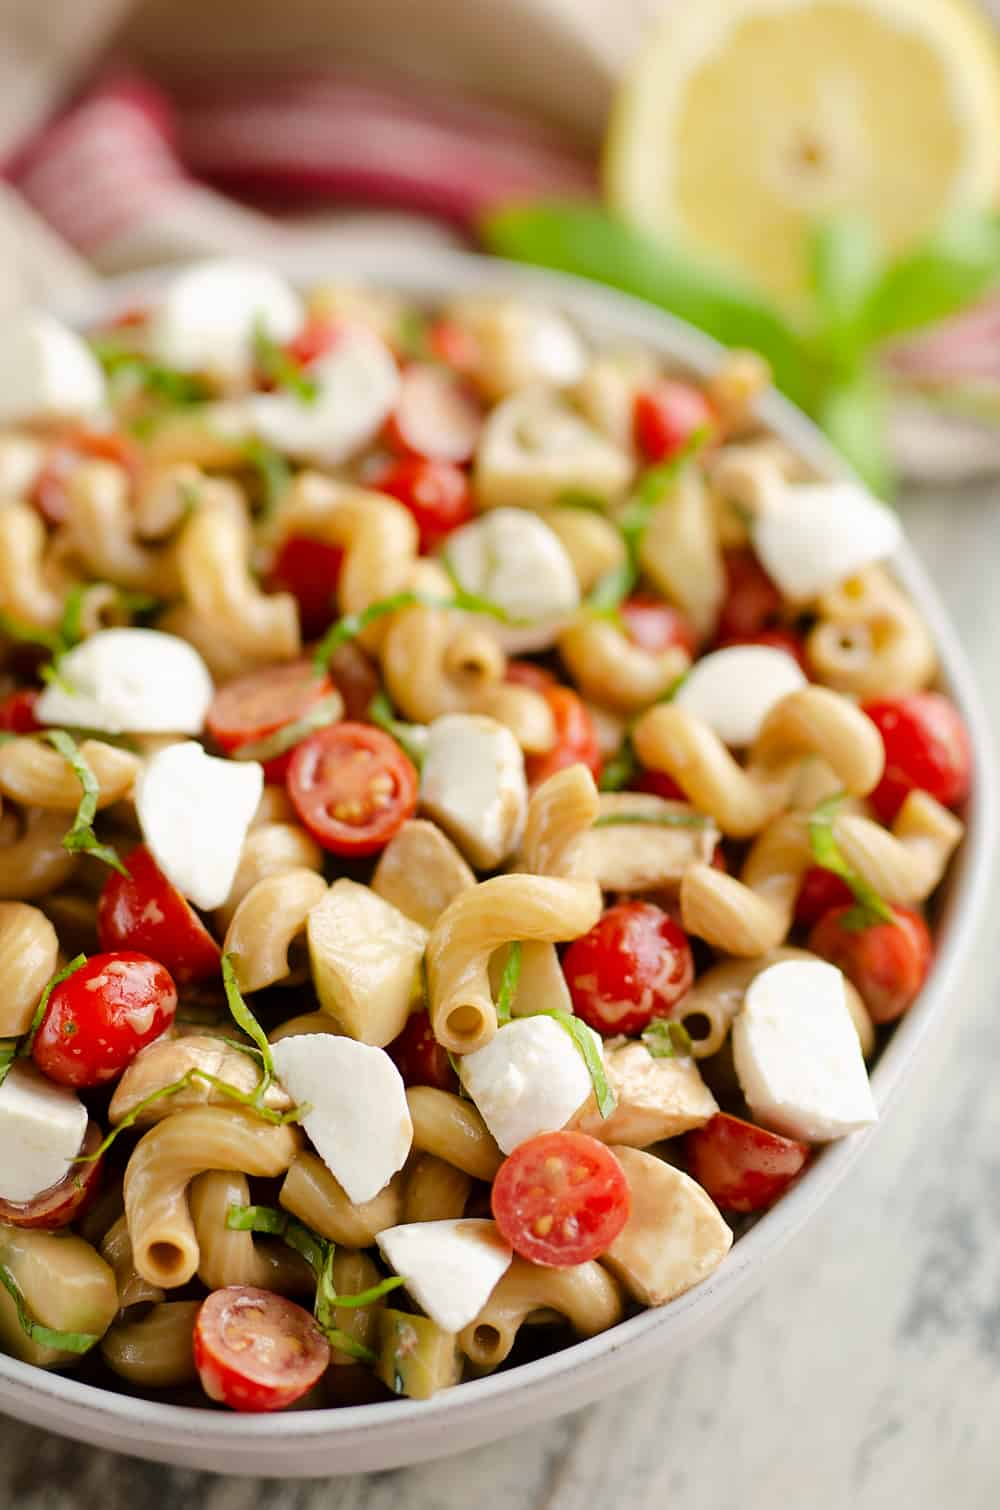 Balsamic Caprese Pasta Salad in large bowl